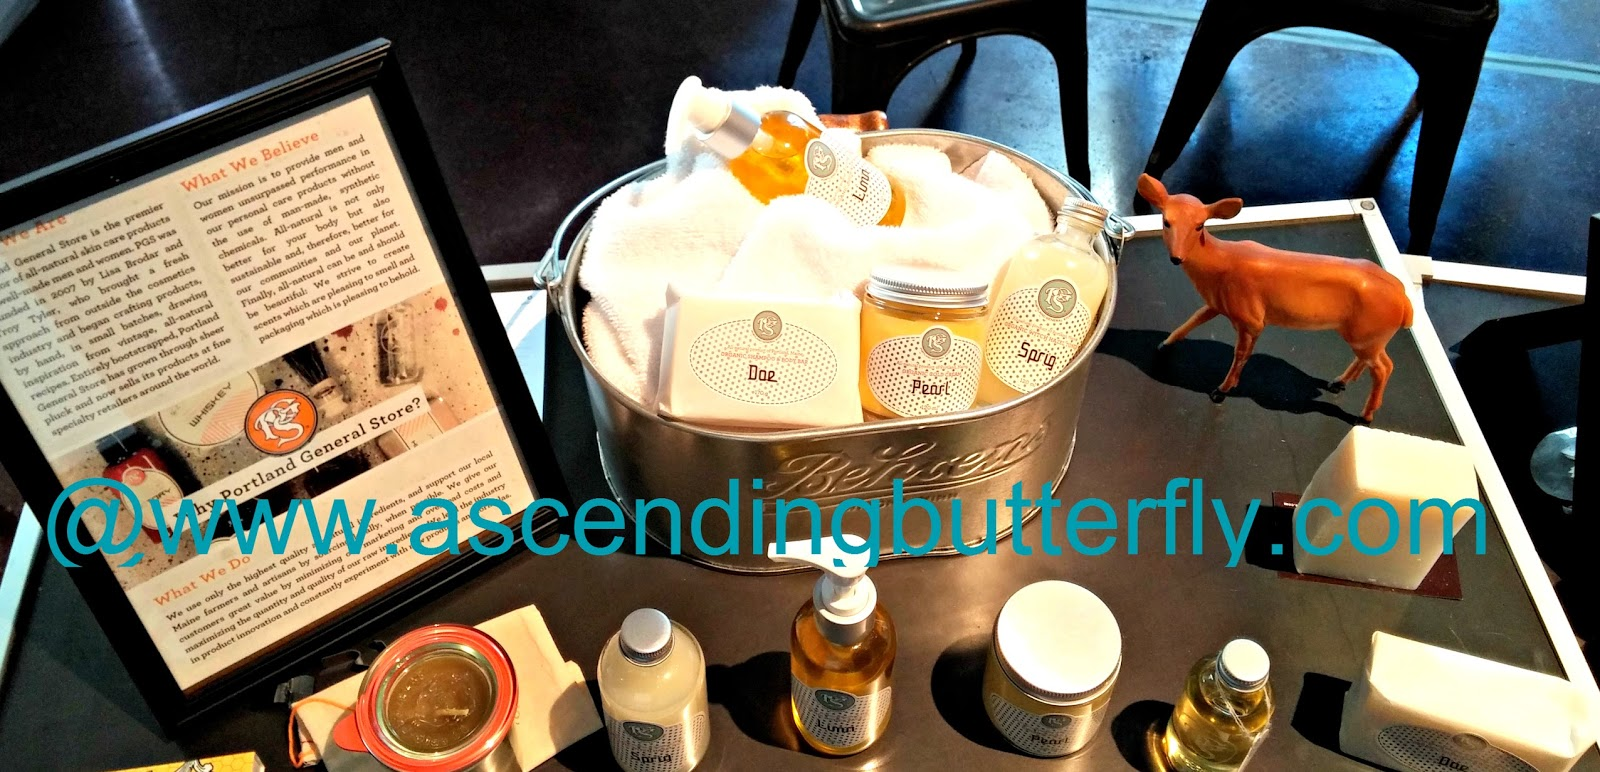 Products on Display during Elements Showcase New York City February 2014 Portland General Store Apothecary